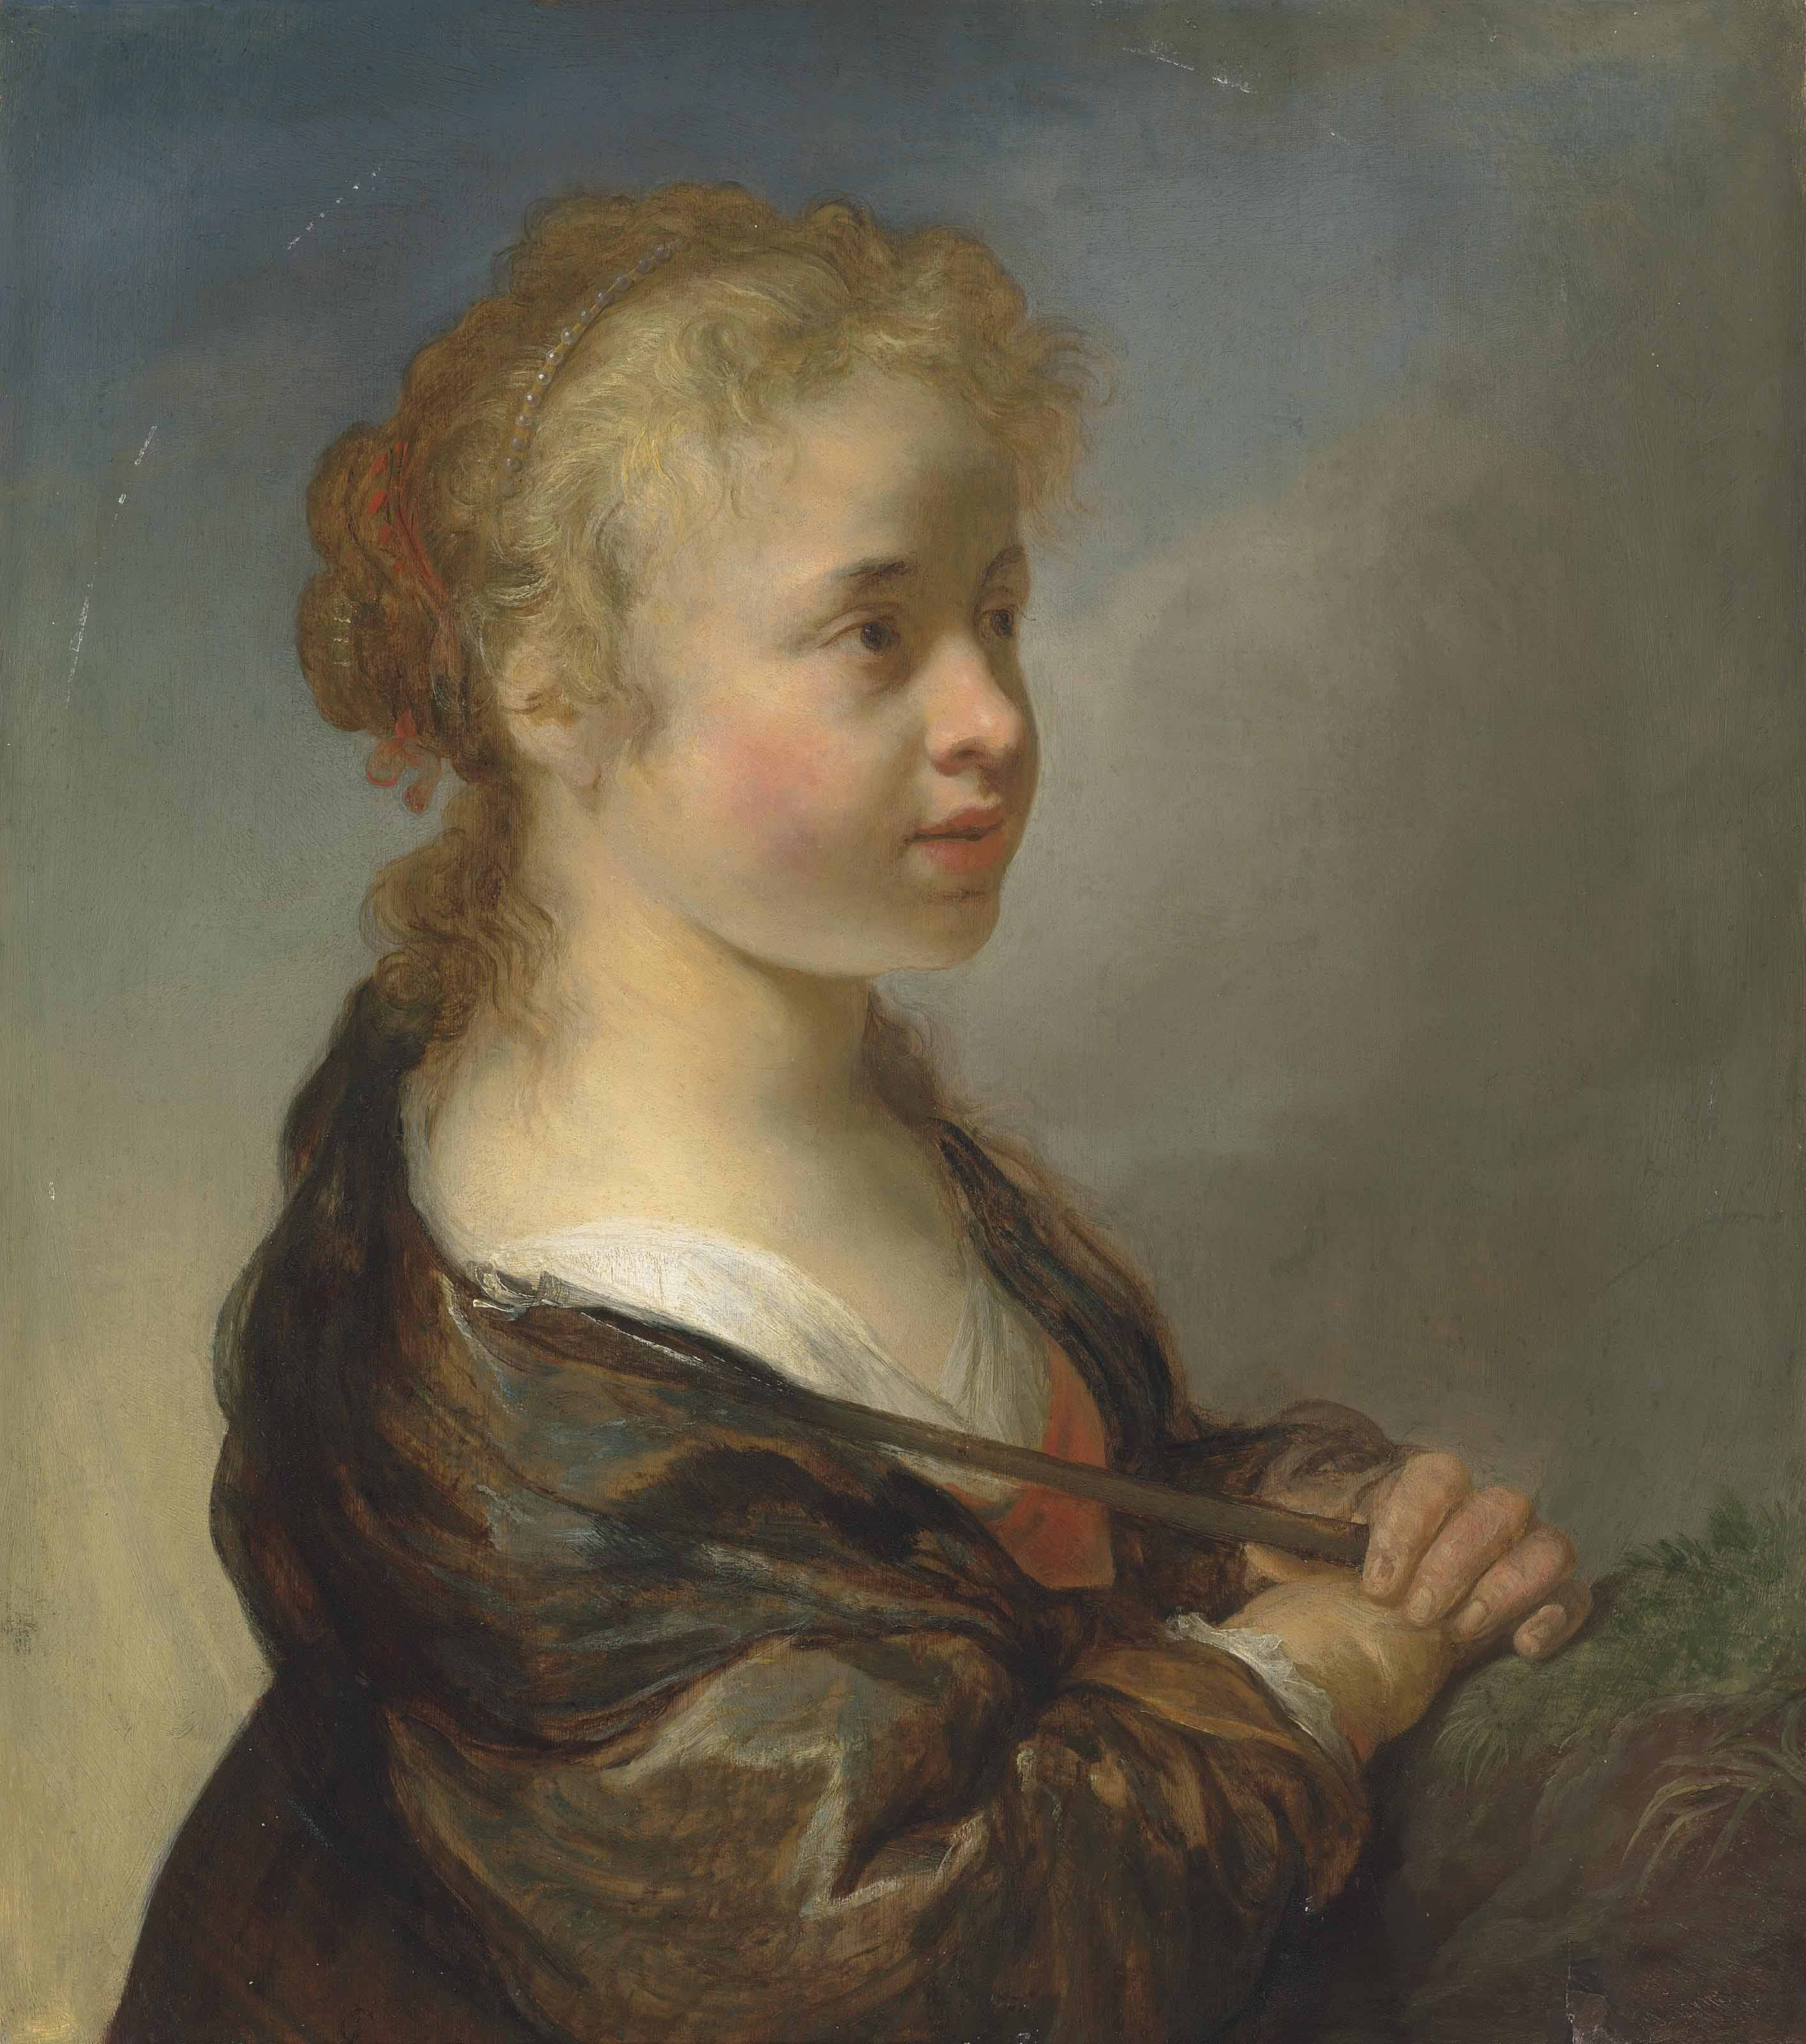 Portrait of a girl as a shepherdess, half-length, in a red dress and blue wrap, with a pearl headdress